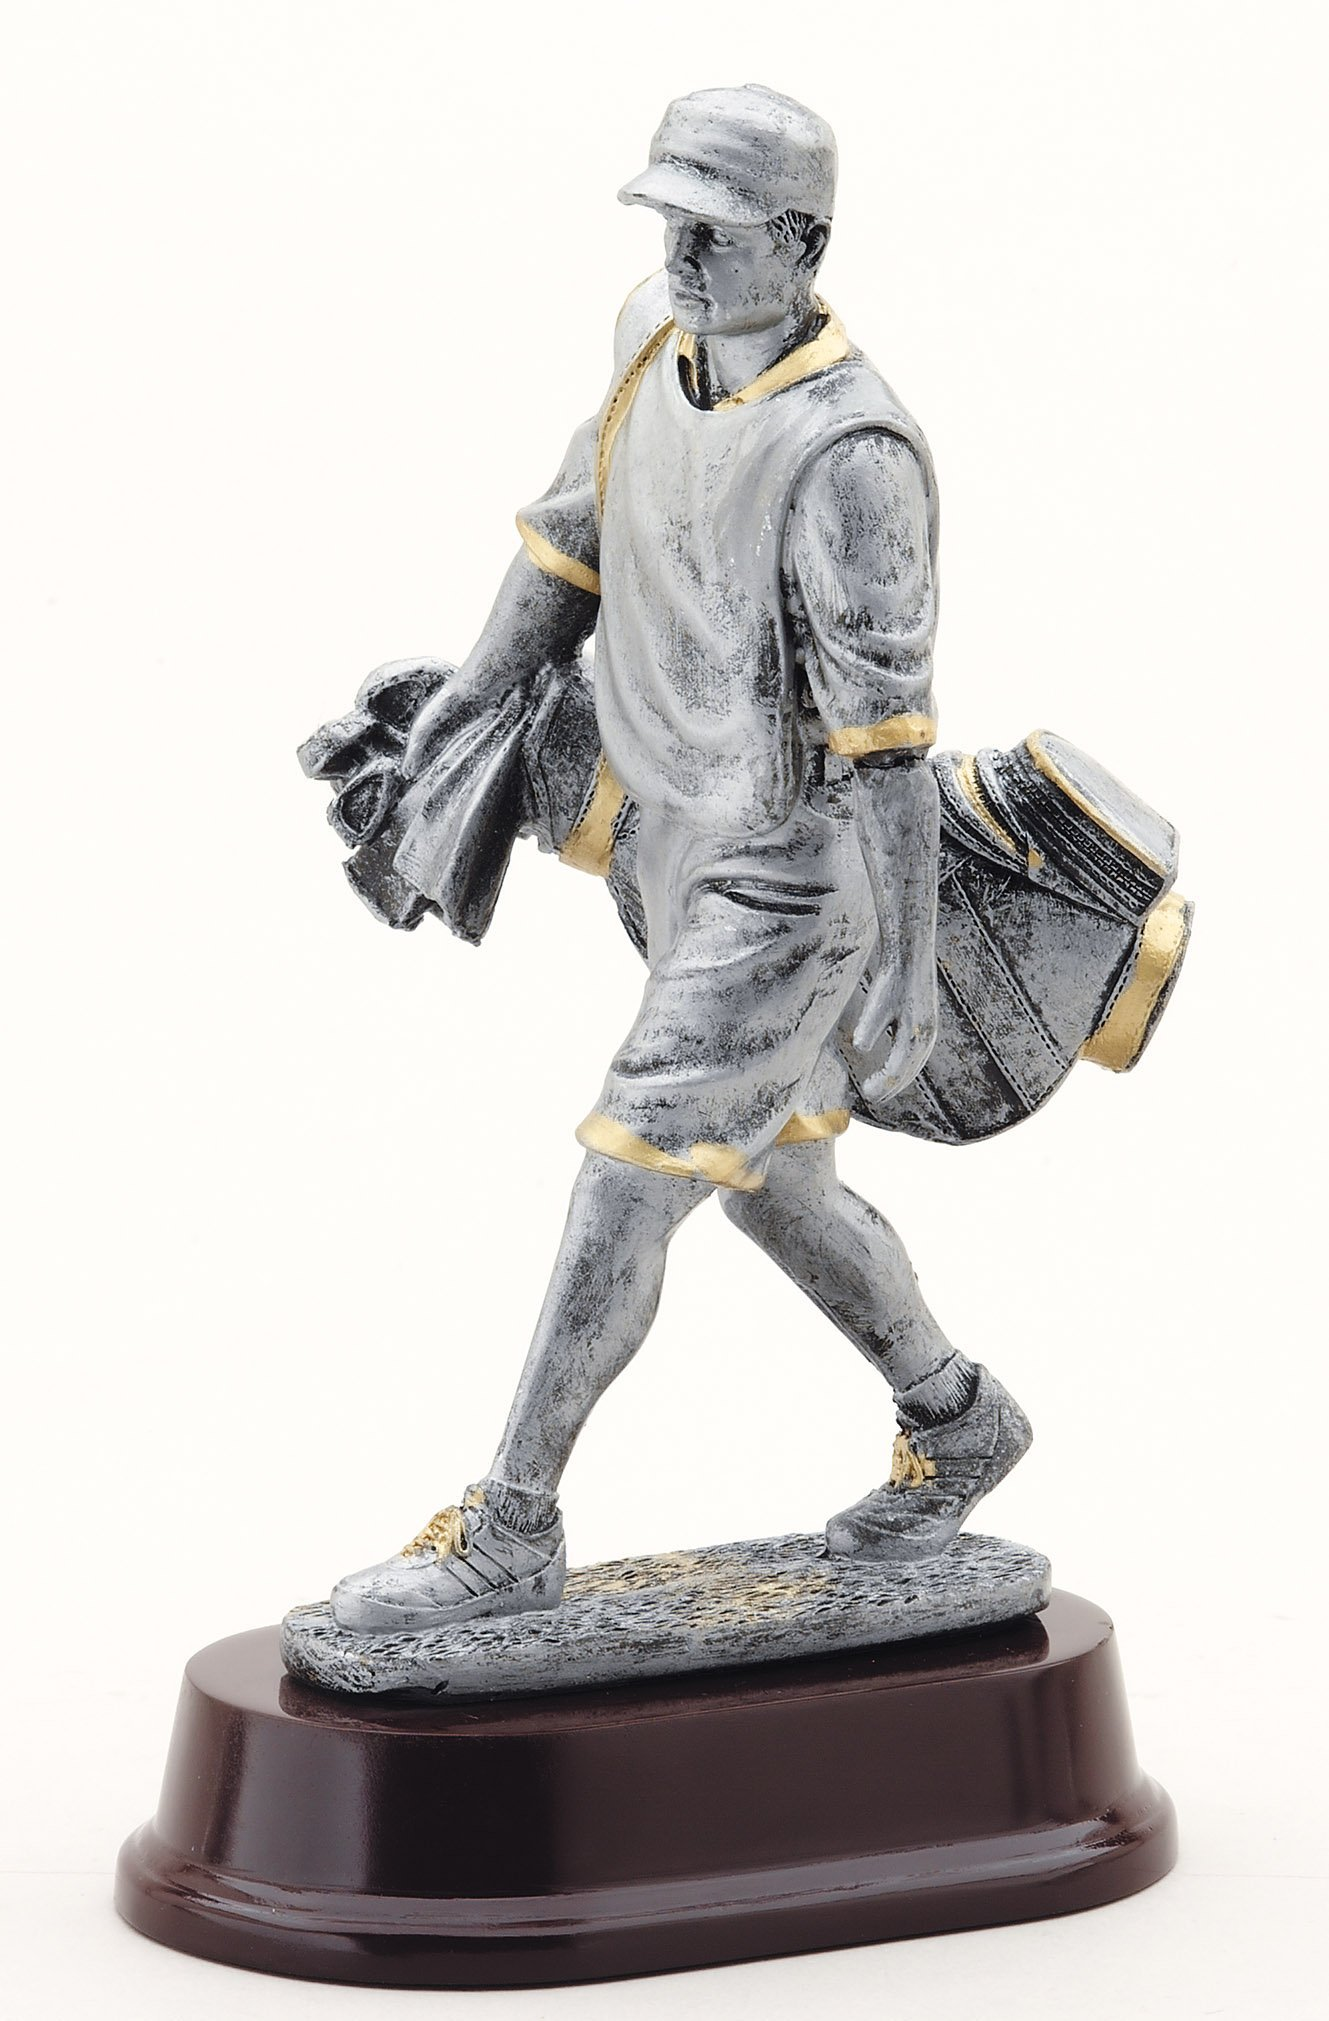 The Trophy Studio Golf Caddie With Bag 9 1/2''tall